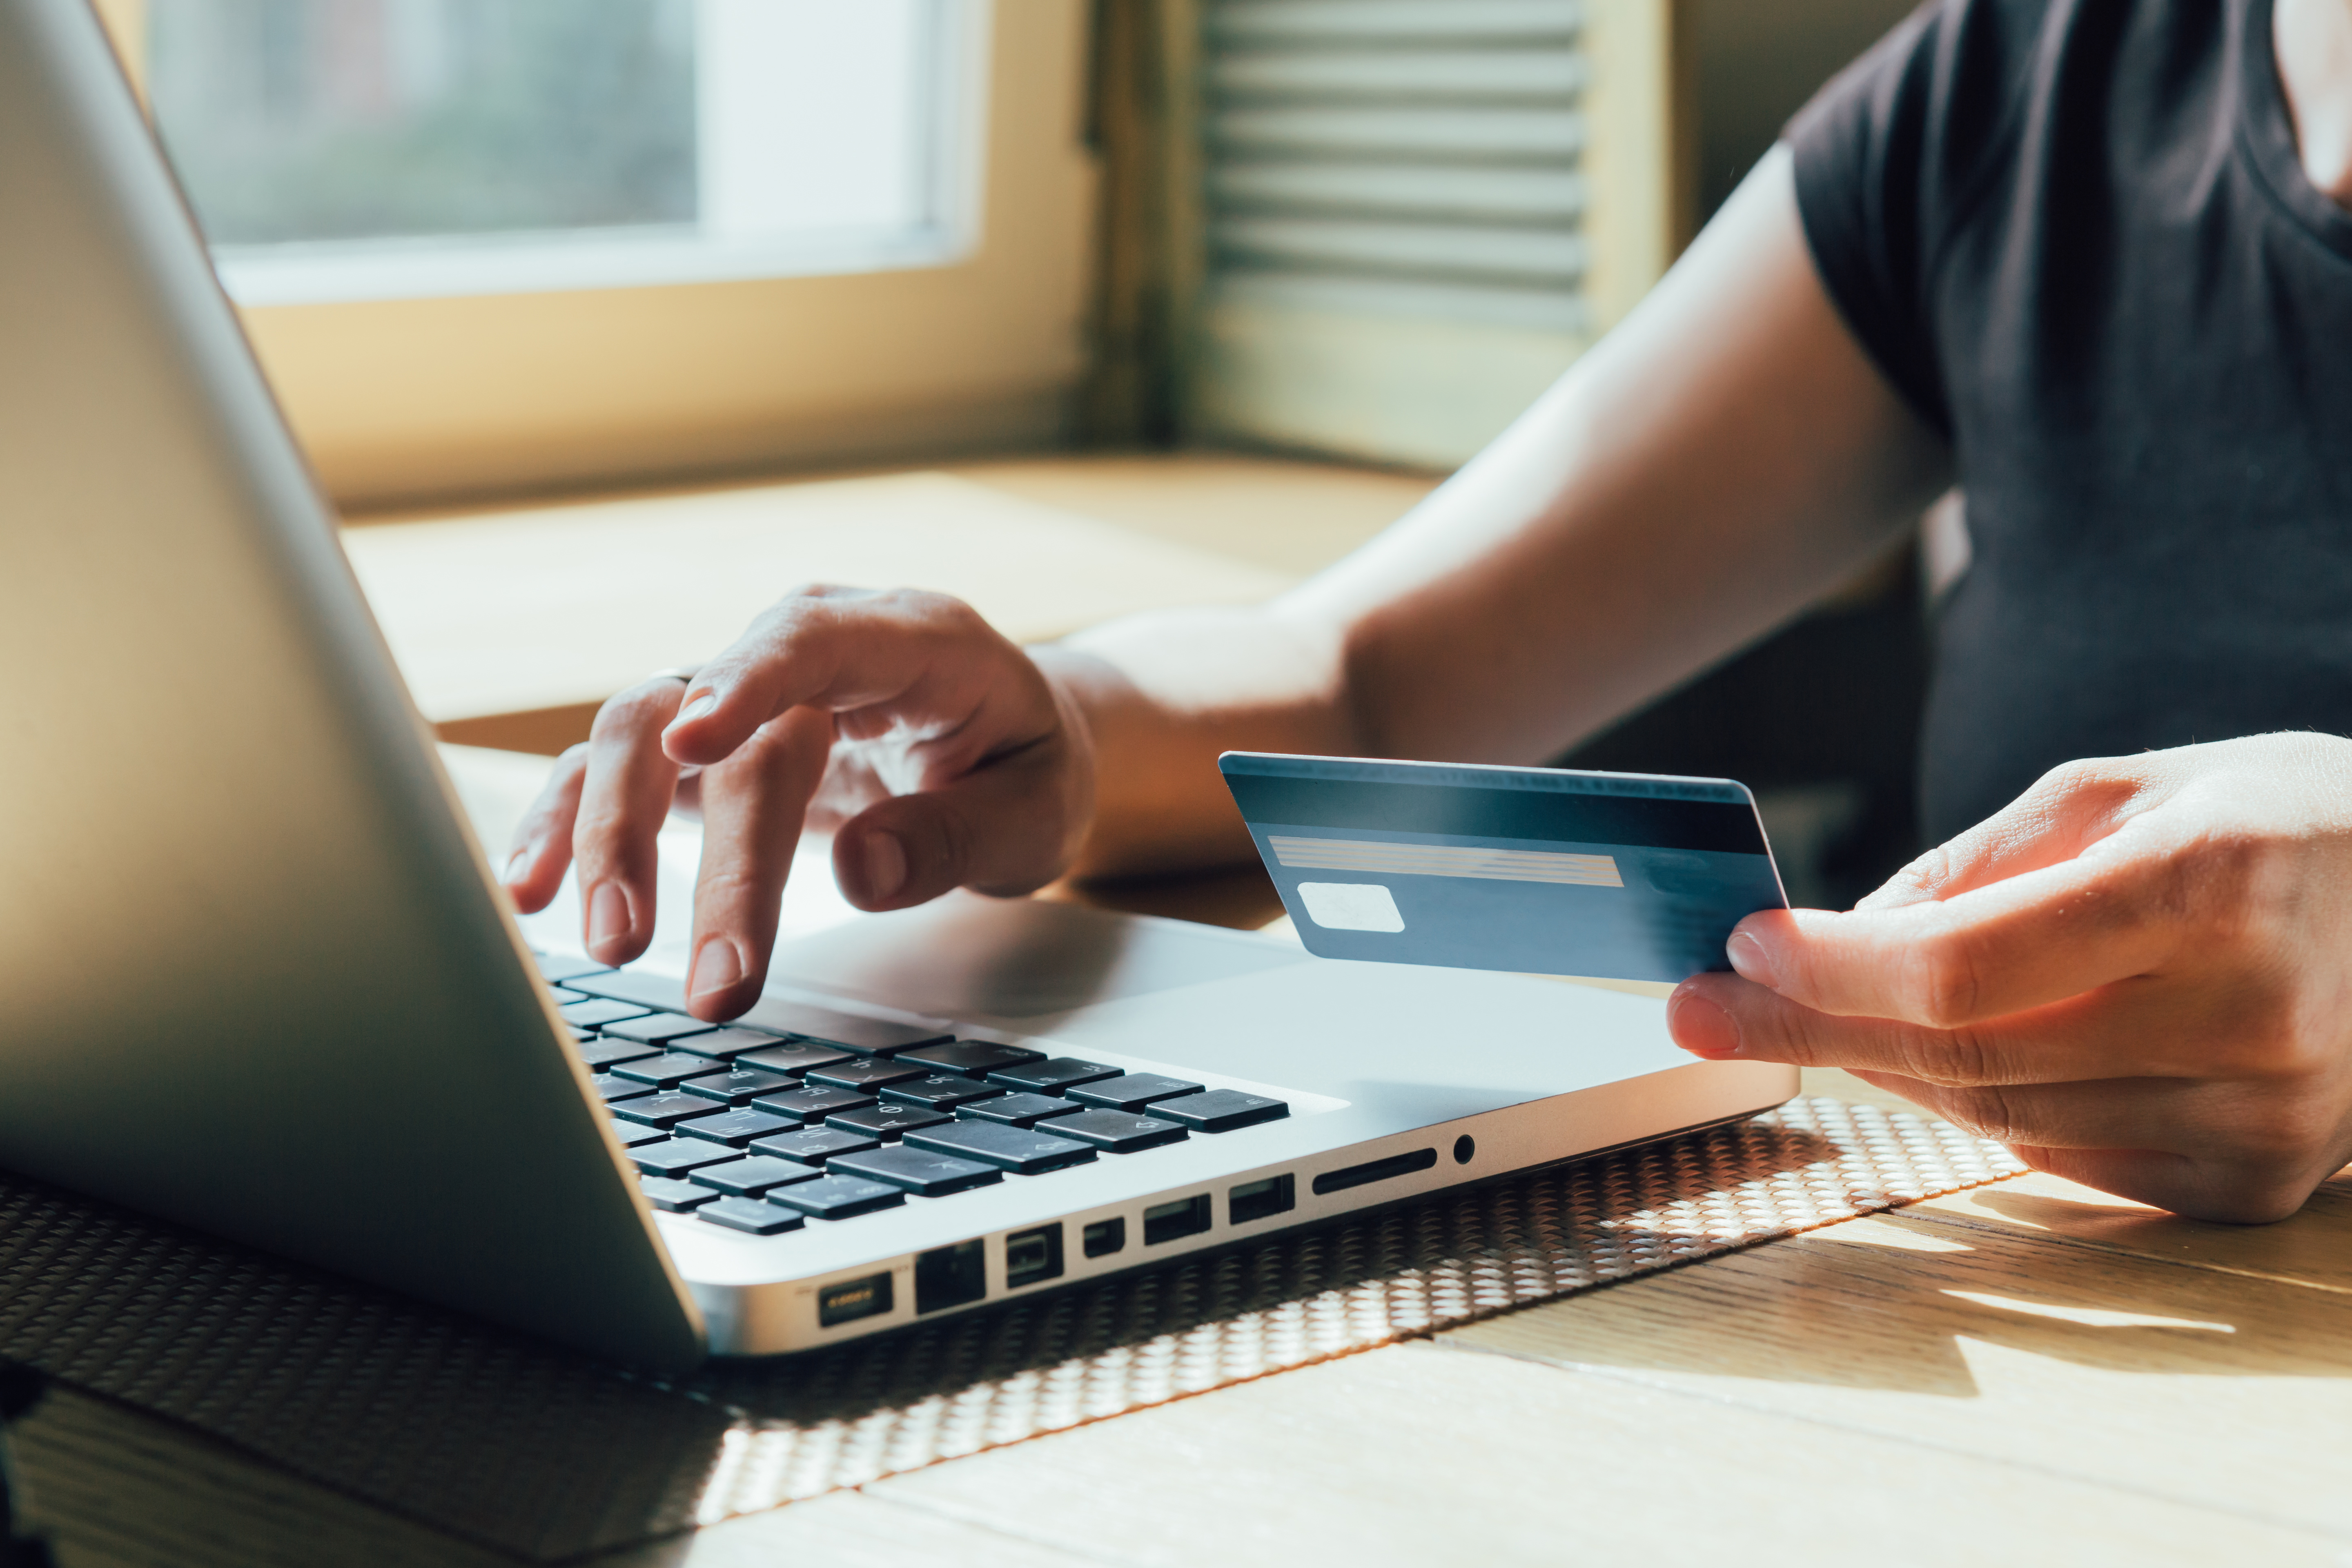 Paying Fees Online (Credit Card)